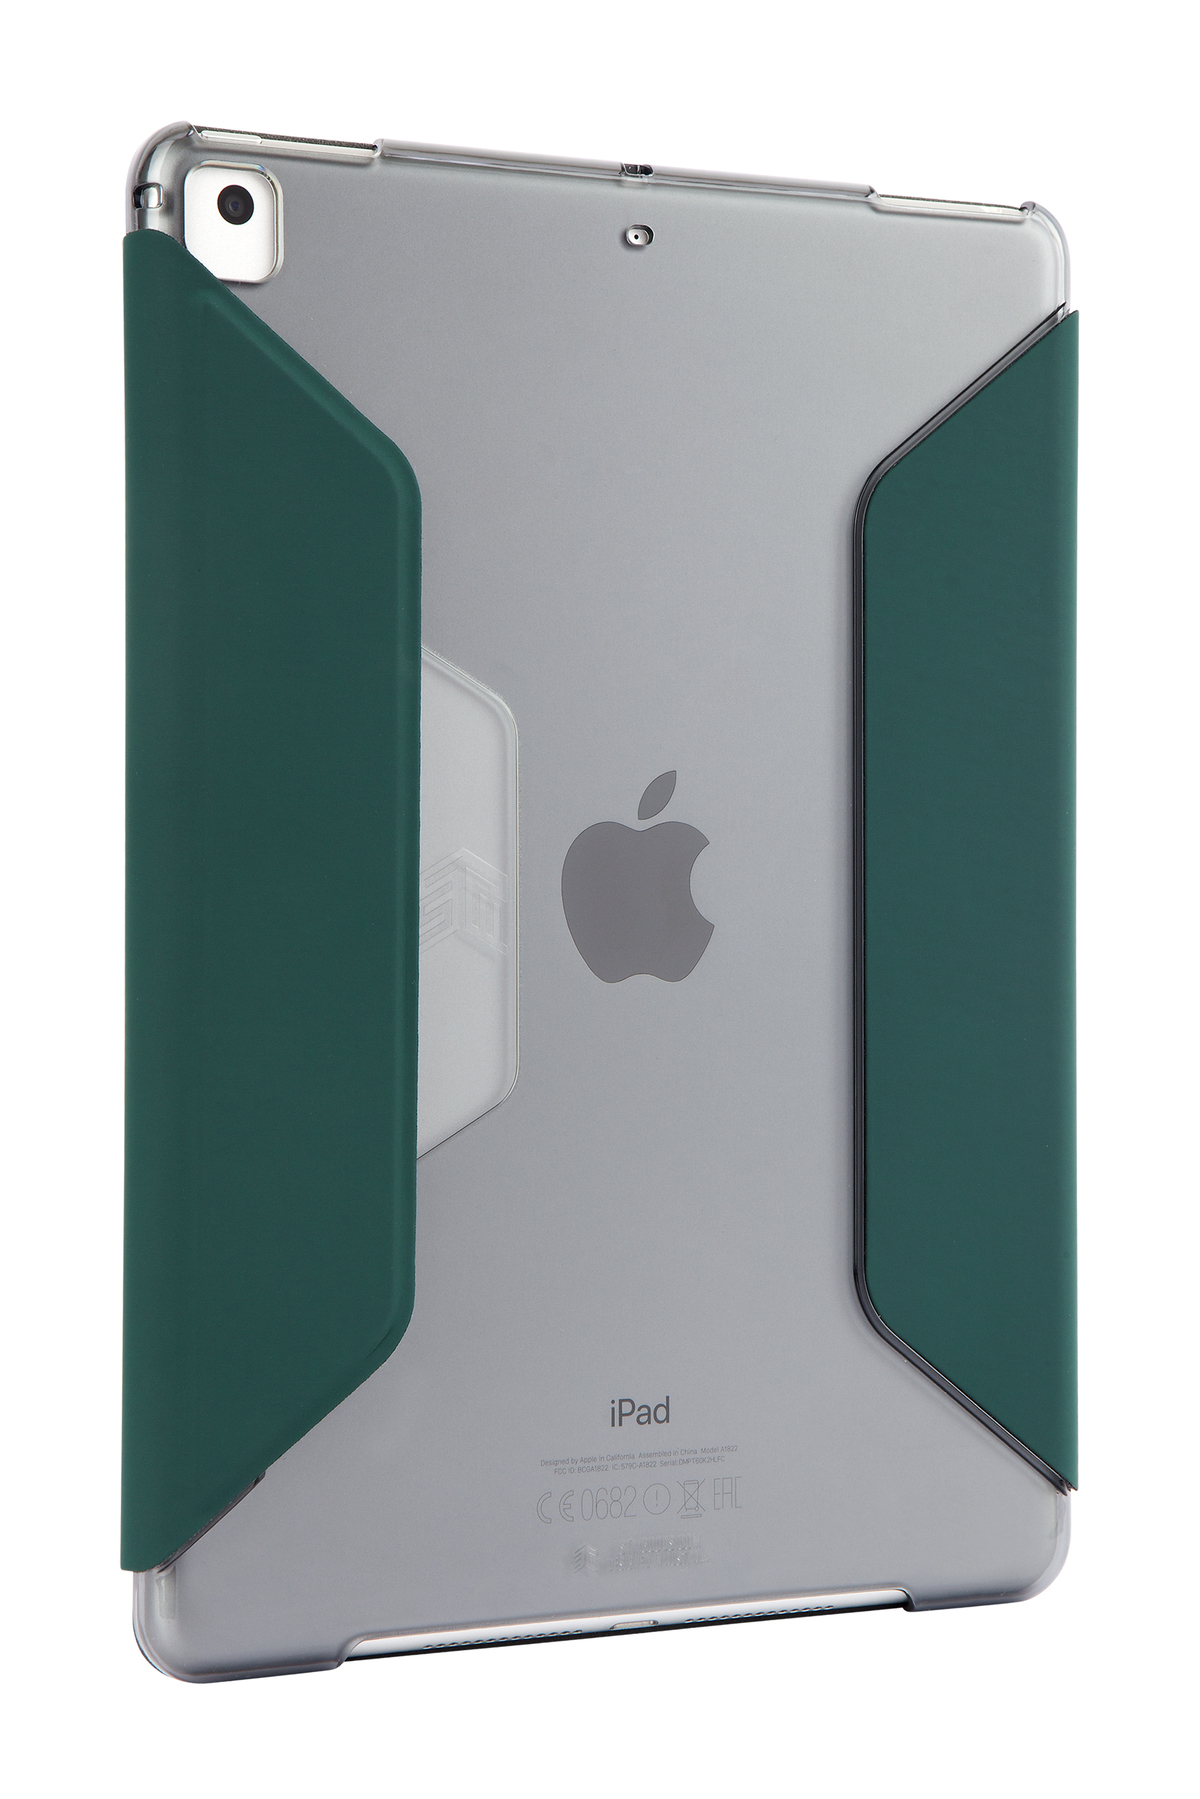 STM-2017-Studio-iPad-5thGen-Dark-Green-Rear-Angle-R.jpg